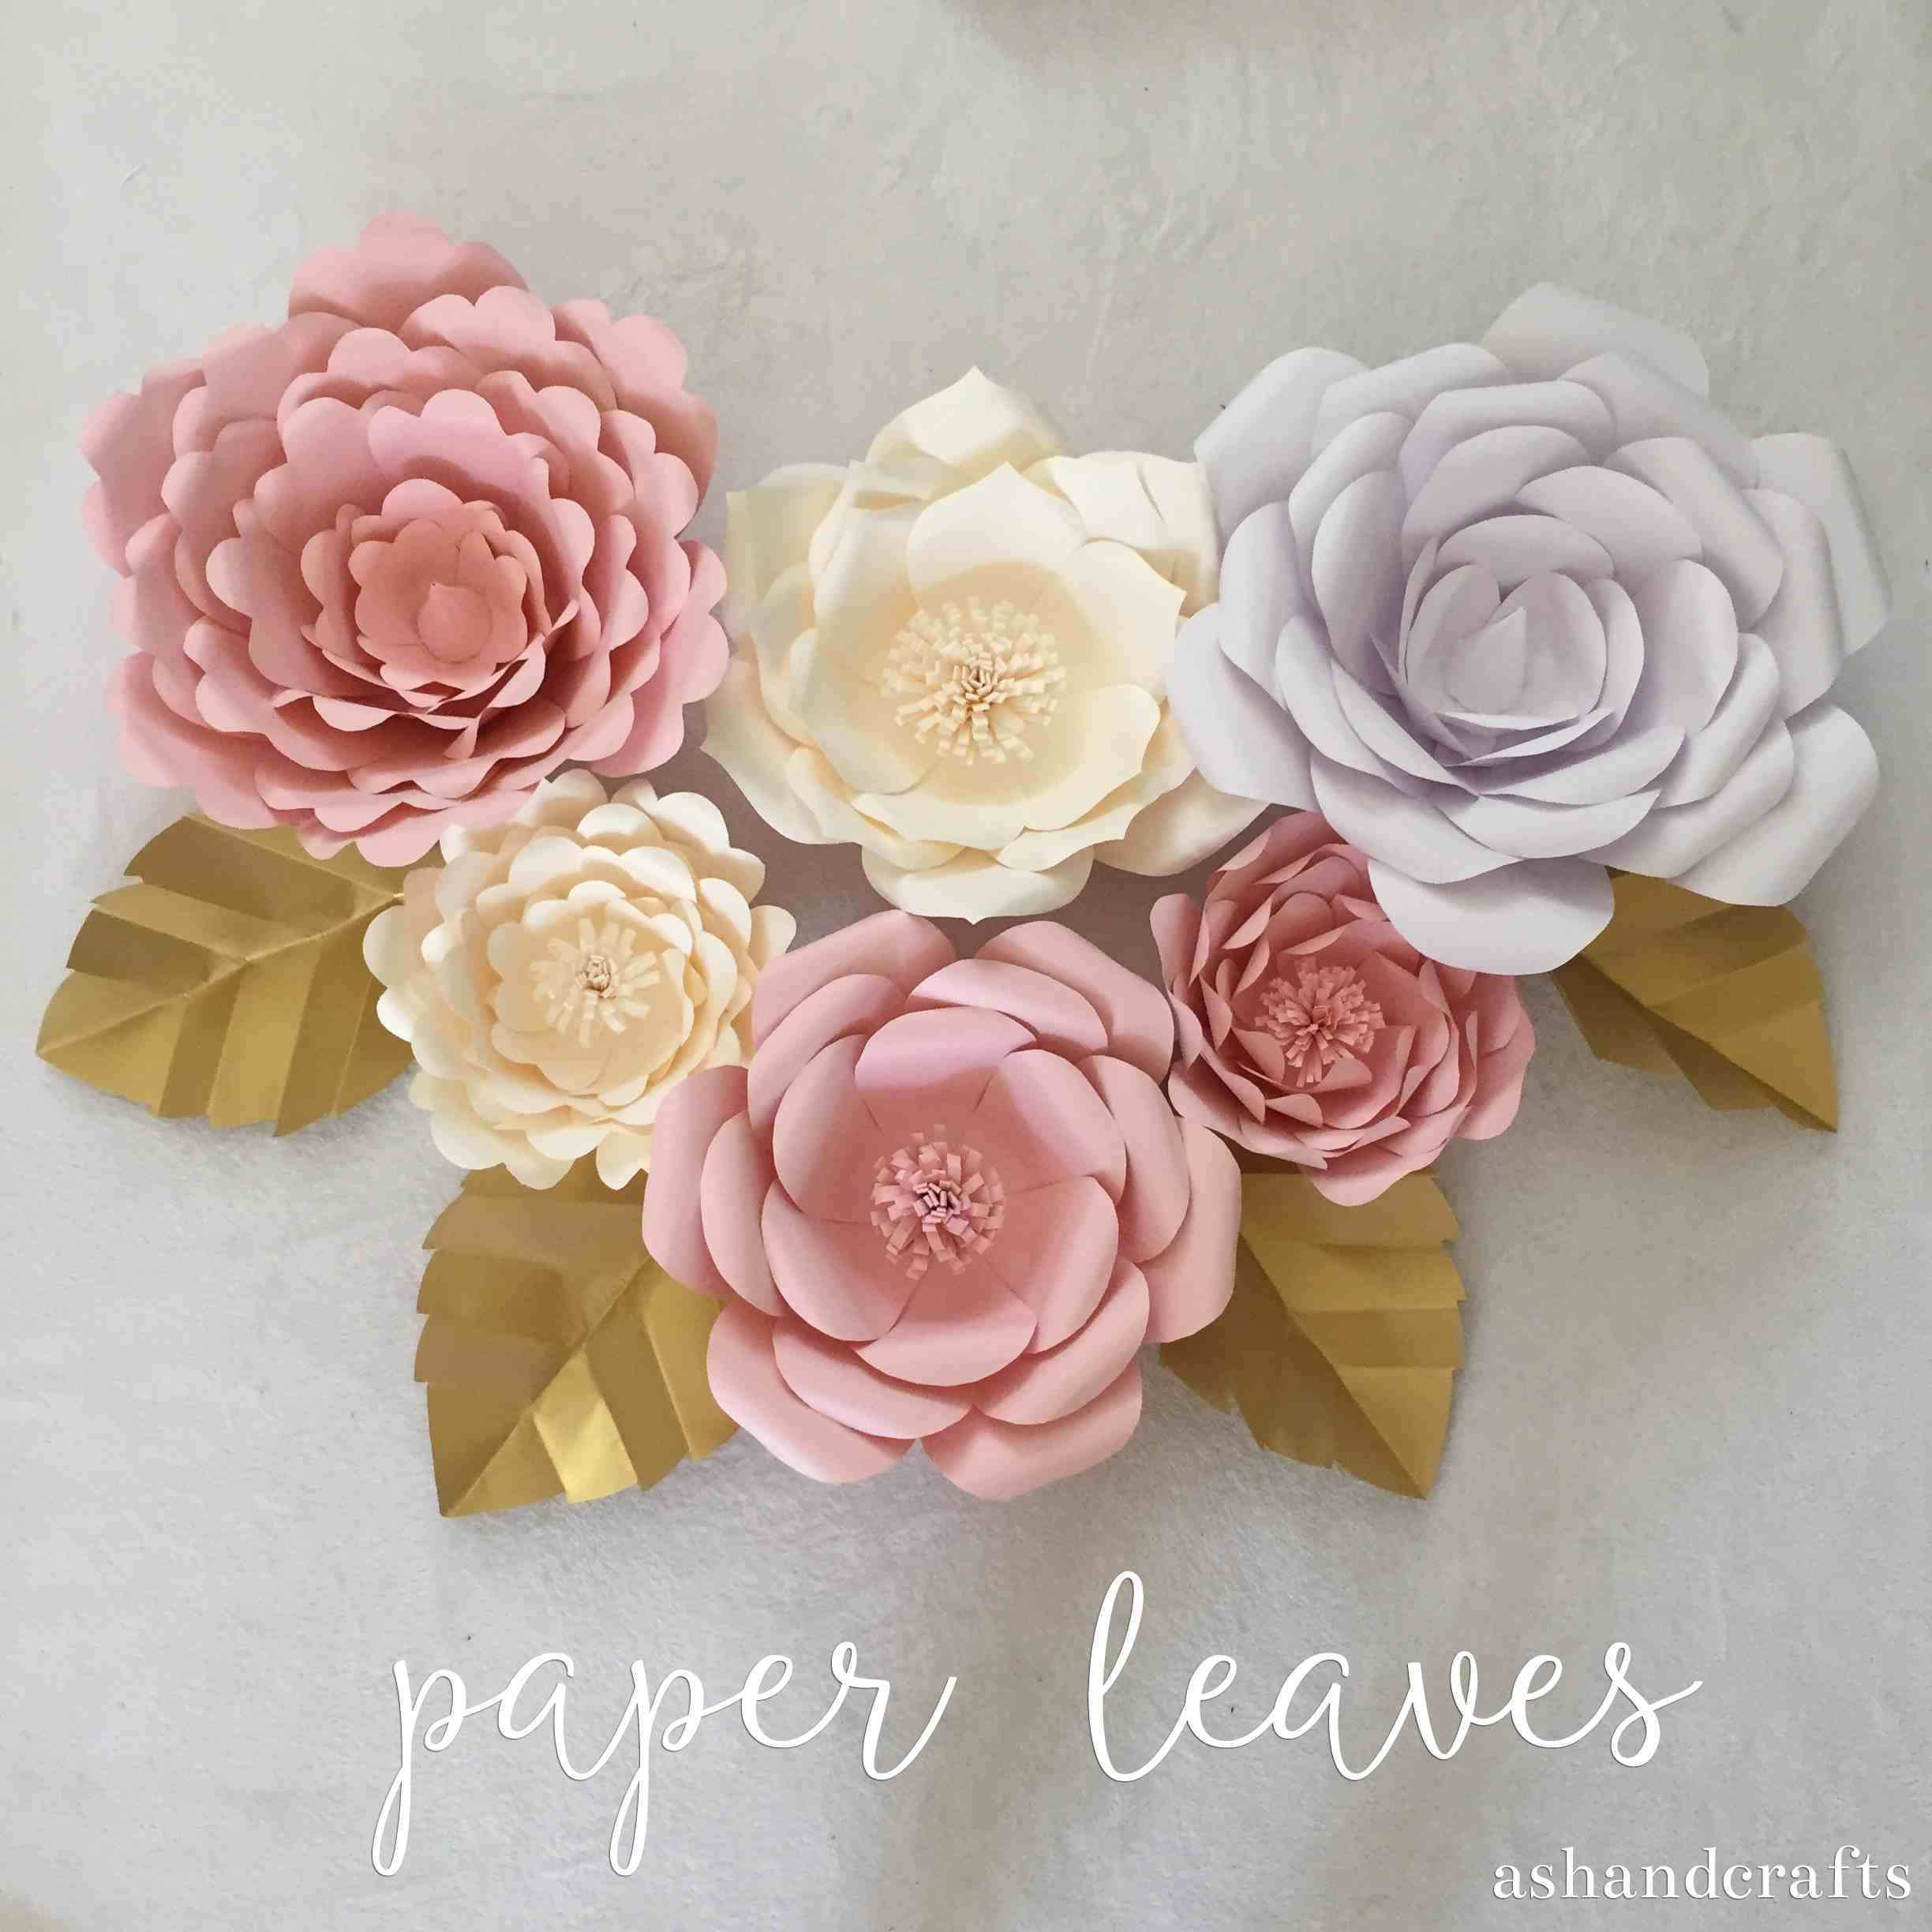 Lovely diy flower wall decor wall art ideas 28 fun and easy to make paper flower projects you can make diy flower wall decor mightylinksfo